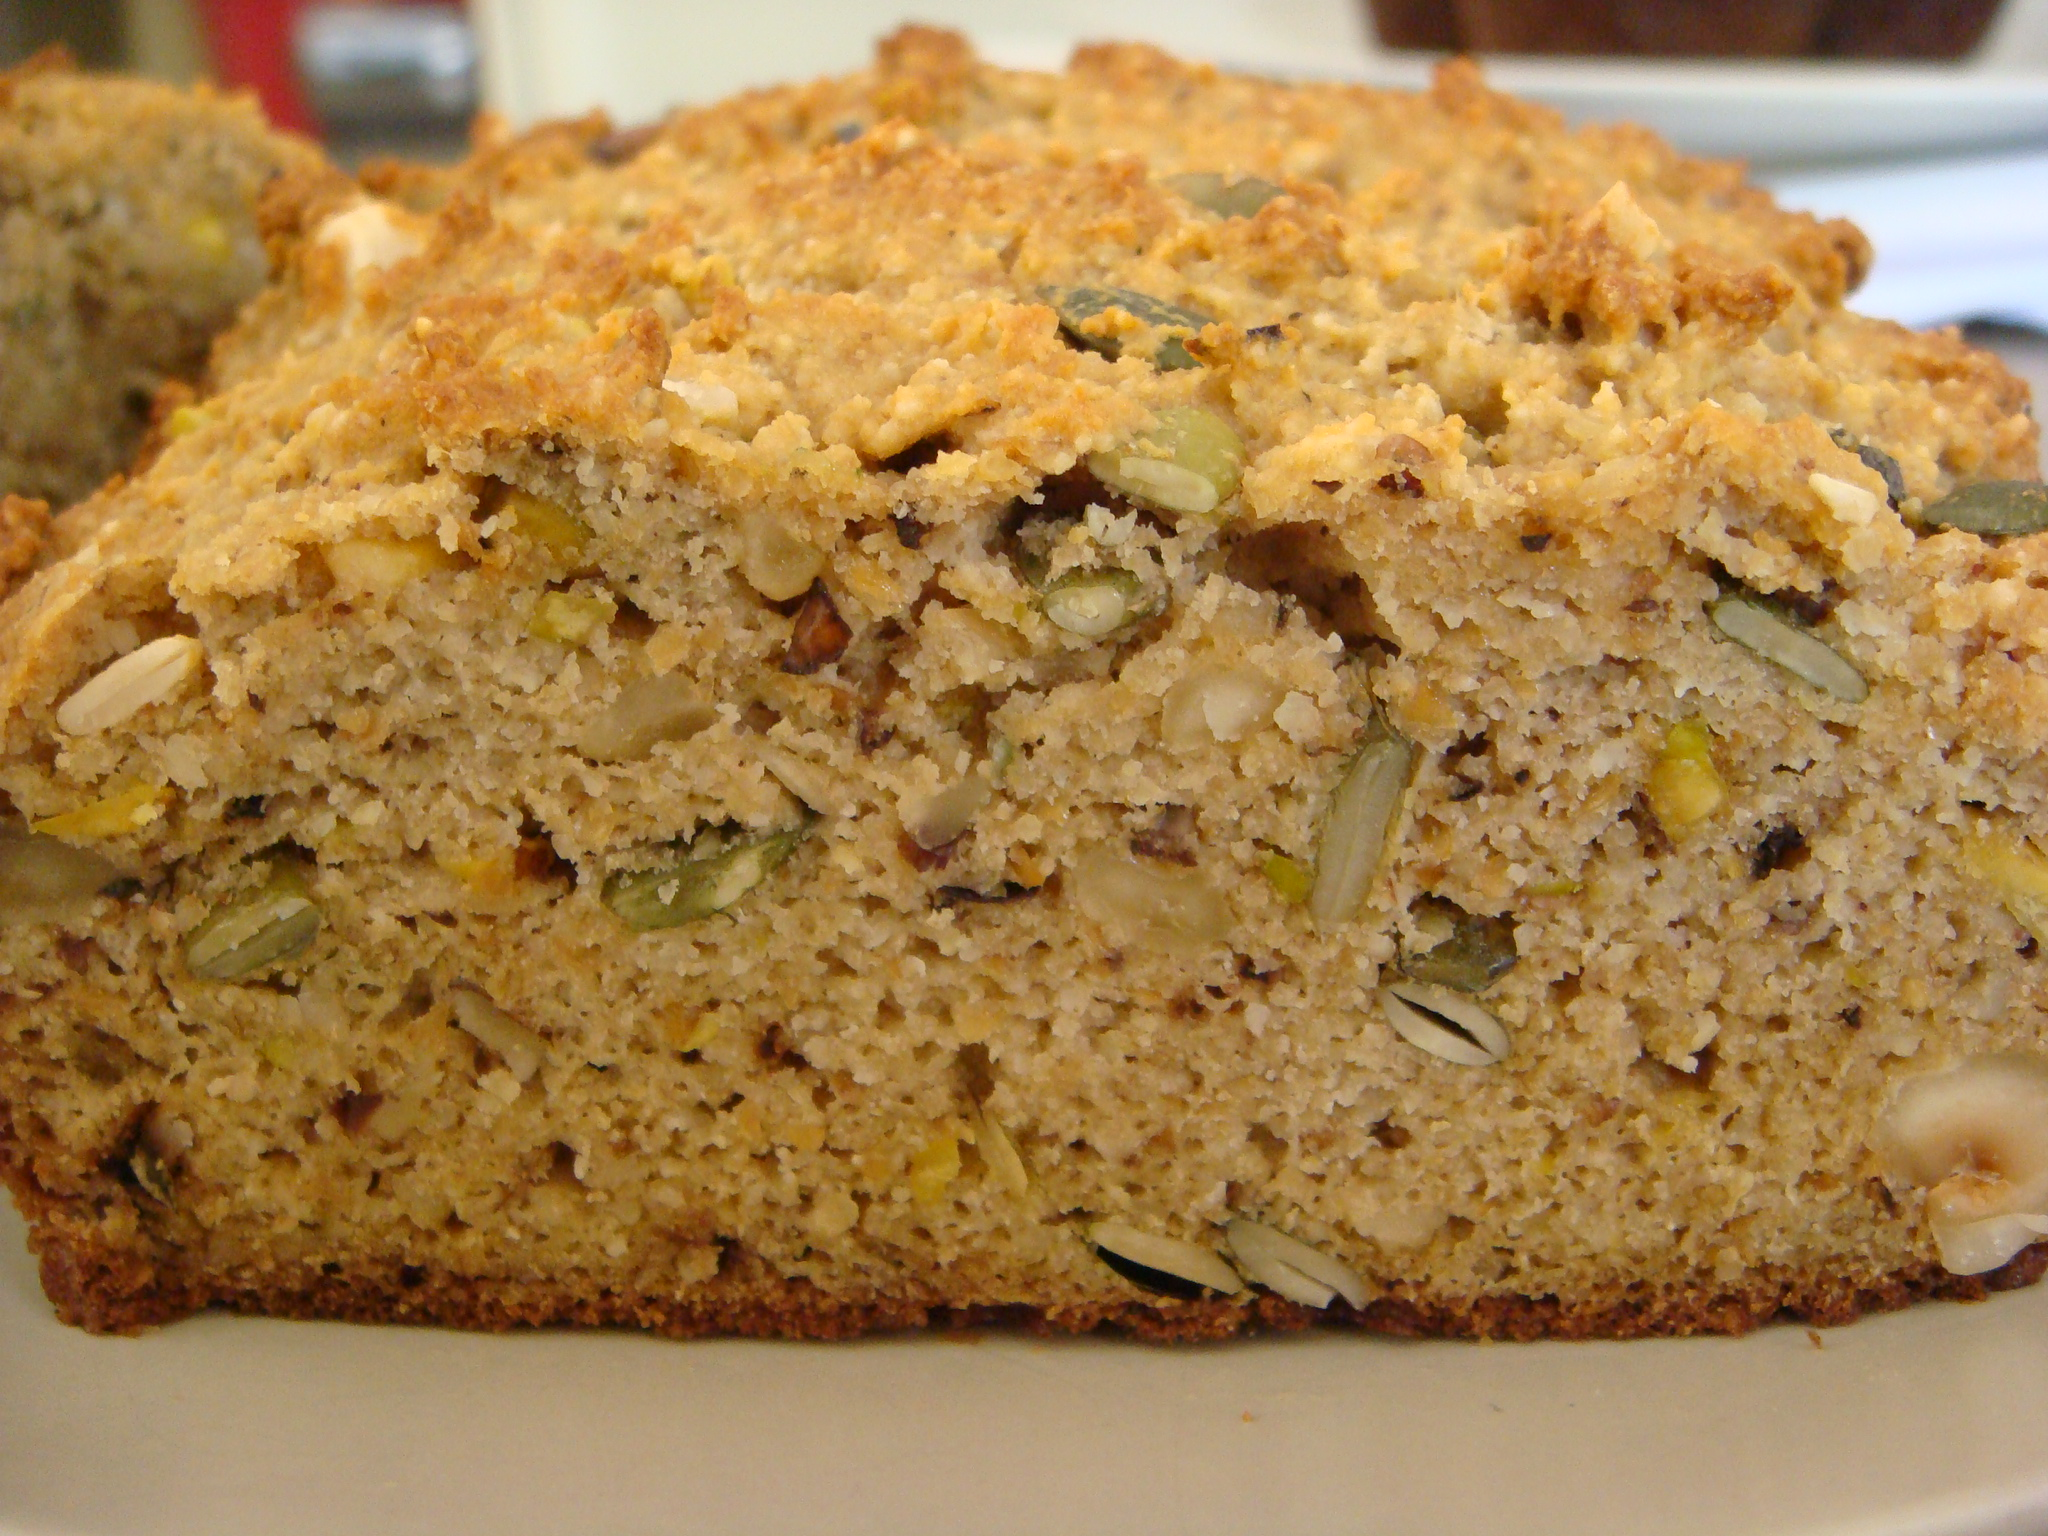 Nutty healthy bread